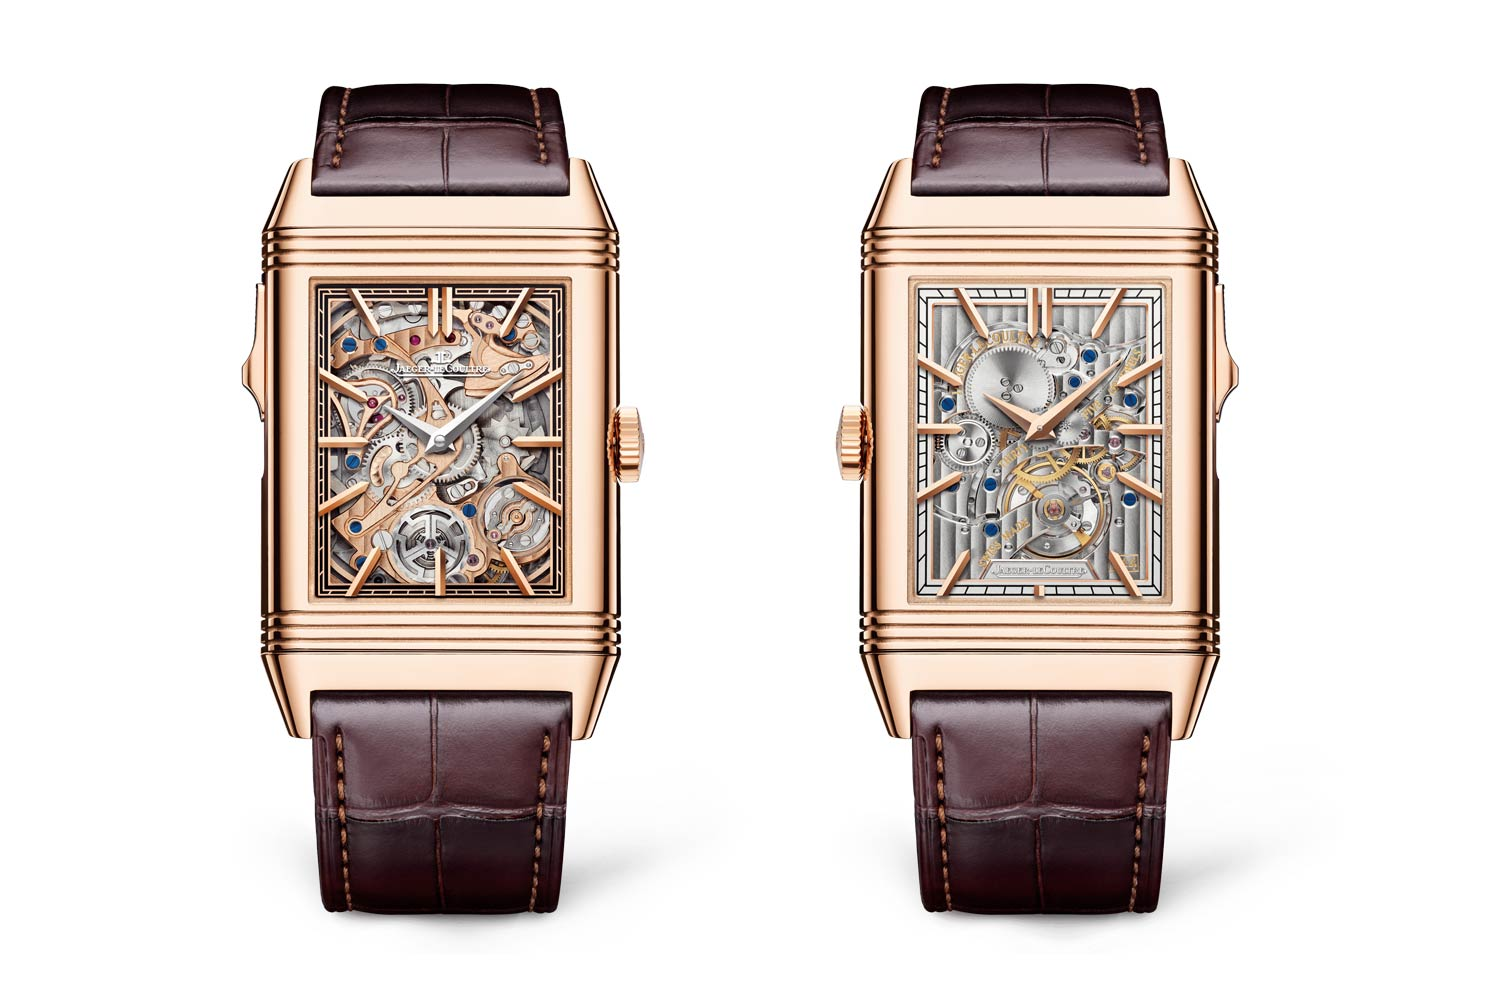 Crafted out of pink gold, the 51.1 x 31 mm minute repeater presents two distinct dials that offer a glimpse of the intricately decorated mechanism on both sides.